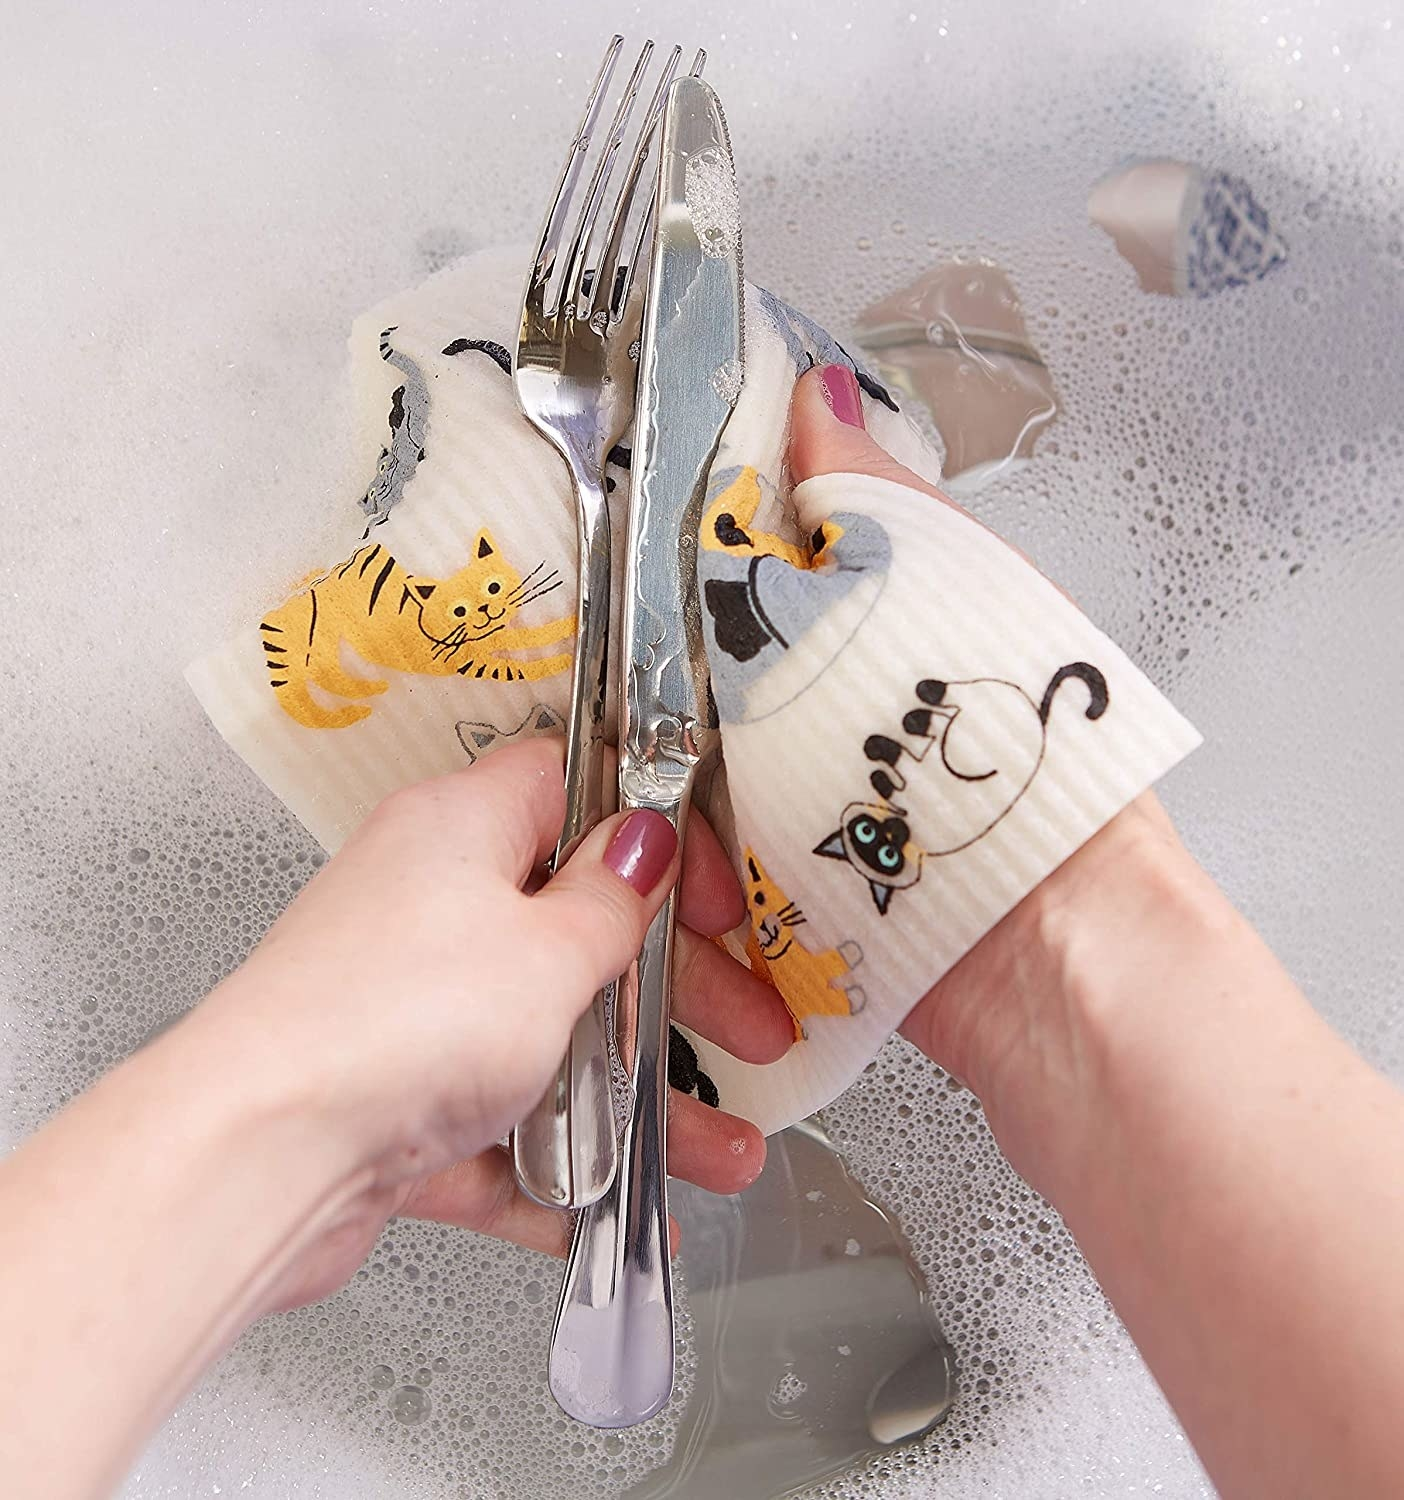 A person washing a knife and fork with a  Swedish dish cloth with happy cats printed on it